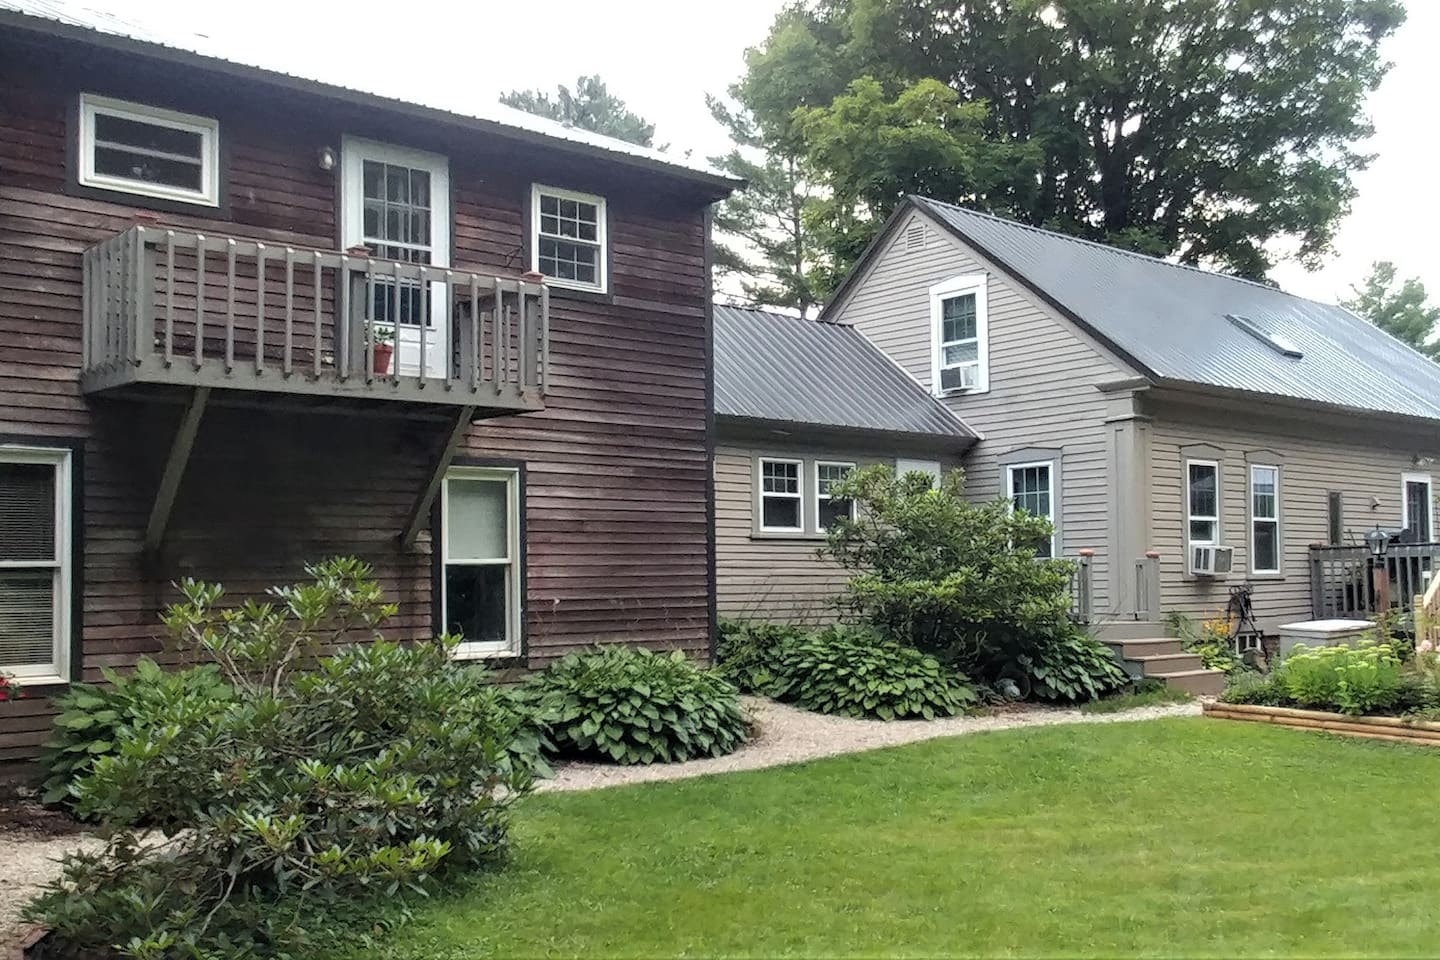 The main house, circa 1820, sits on 3/4 of an acre, surrounded by trees for privacy.  A smaller living space connects the main house to the old barn,  which was also a boxing ring! The upper floor, newly updated, is your private vacation retreat!